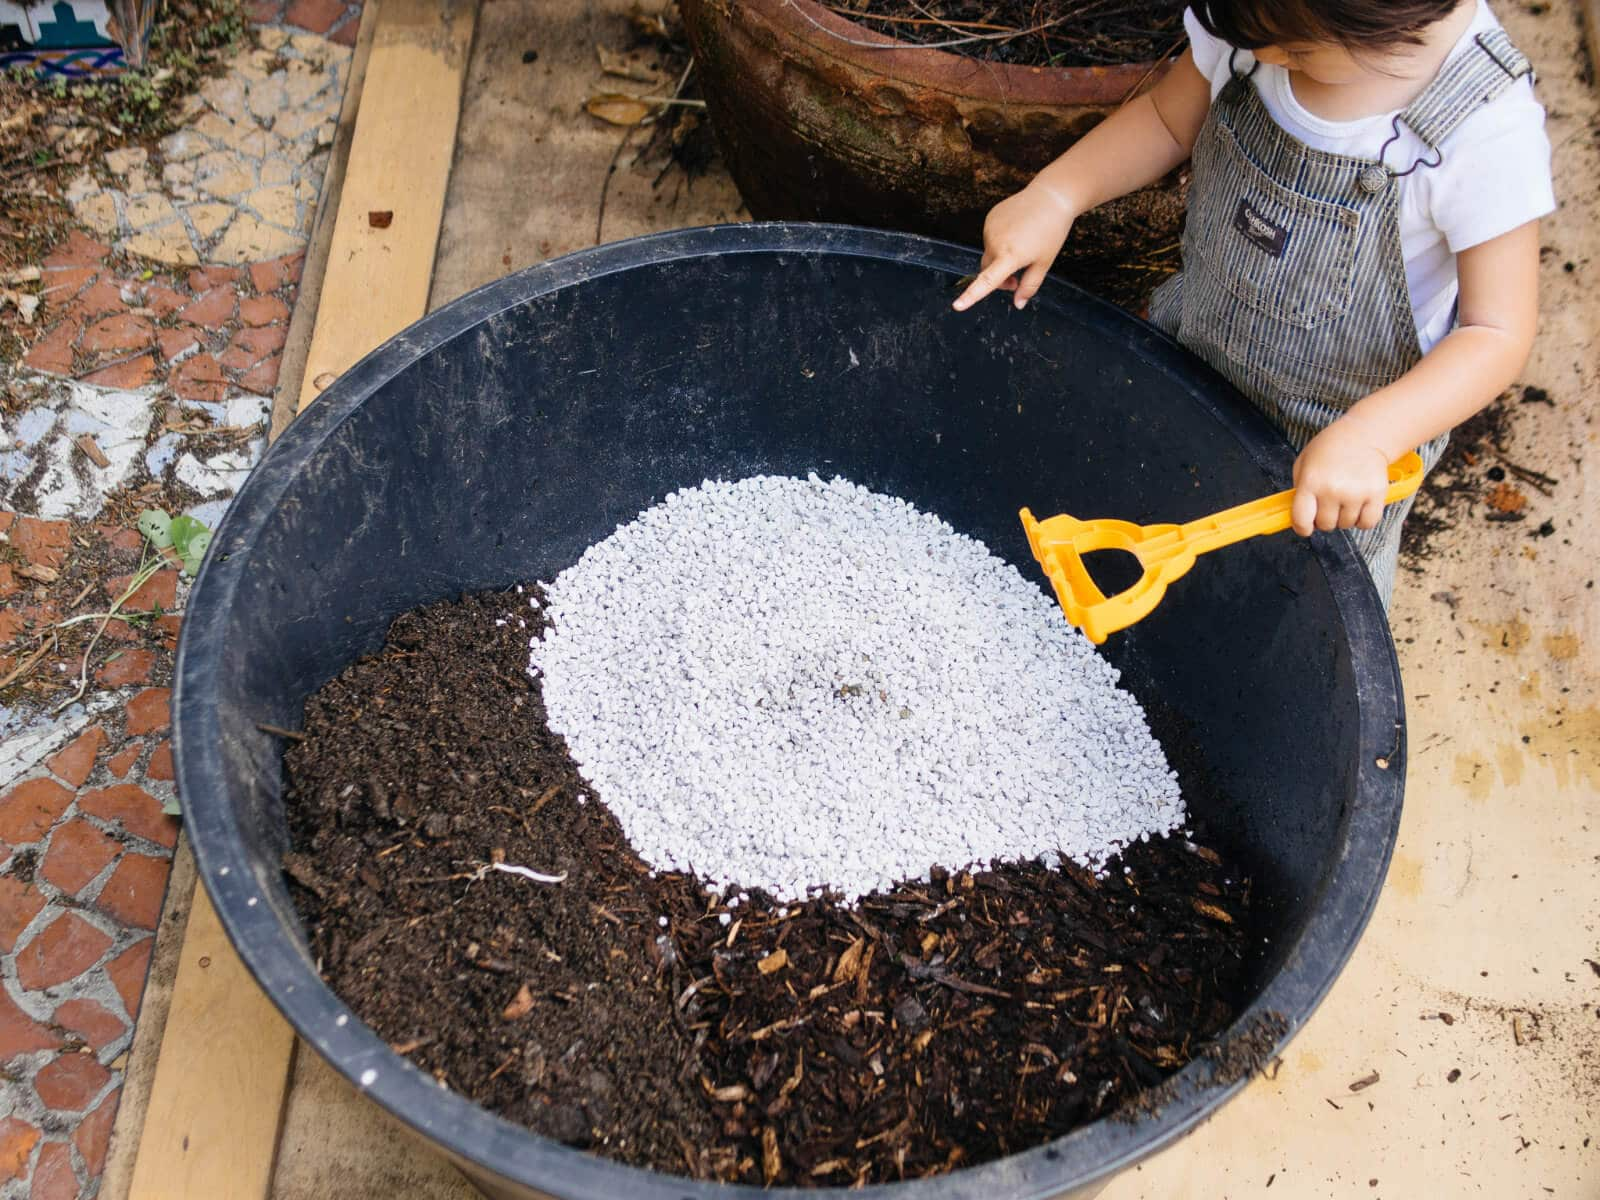 Add perlite to soil mixes for aeration and drainage